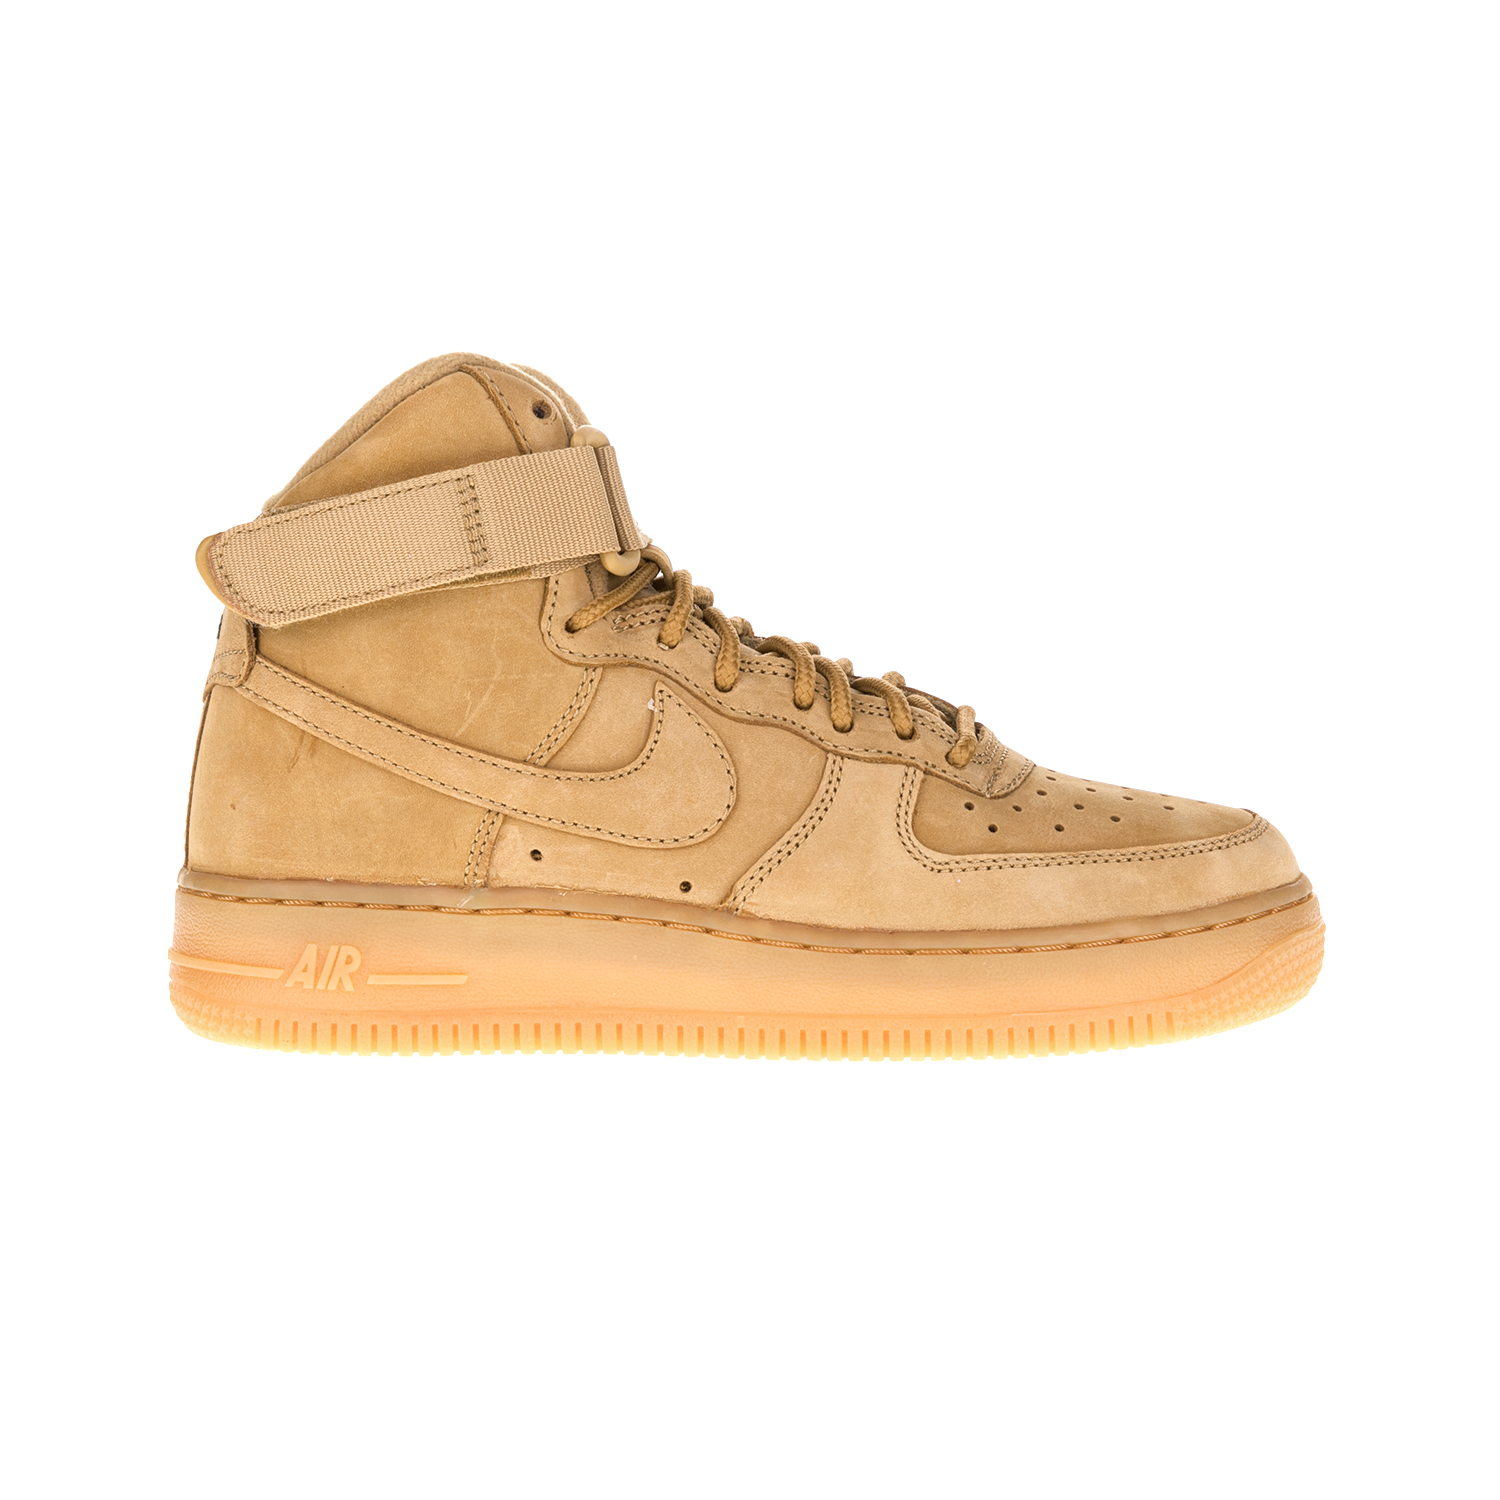 NIKE – Παιδικά μποτάκια AIR FORCE 1 HIGH LV8 ΝΙΚΕ καφέ